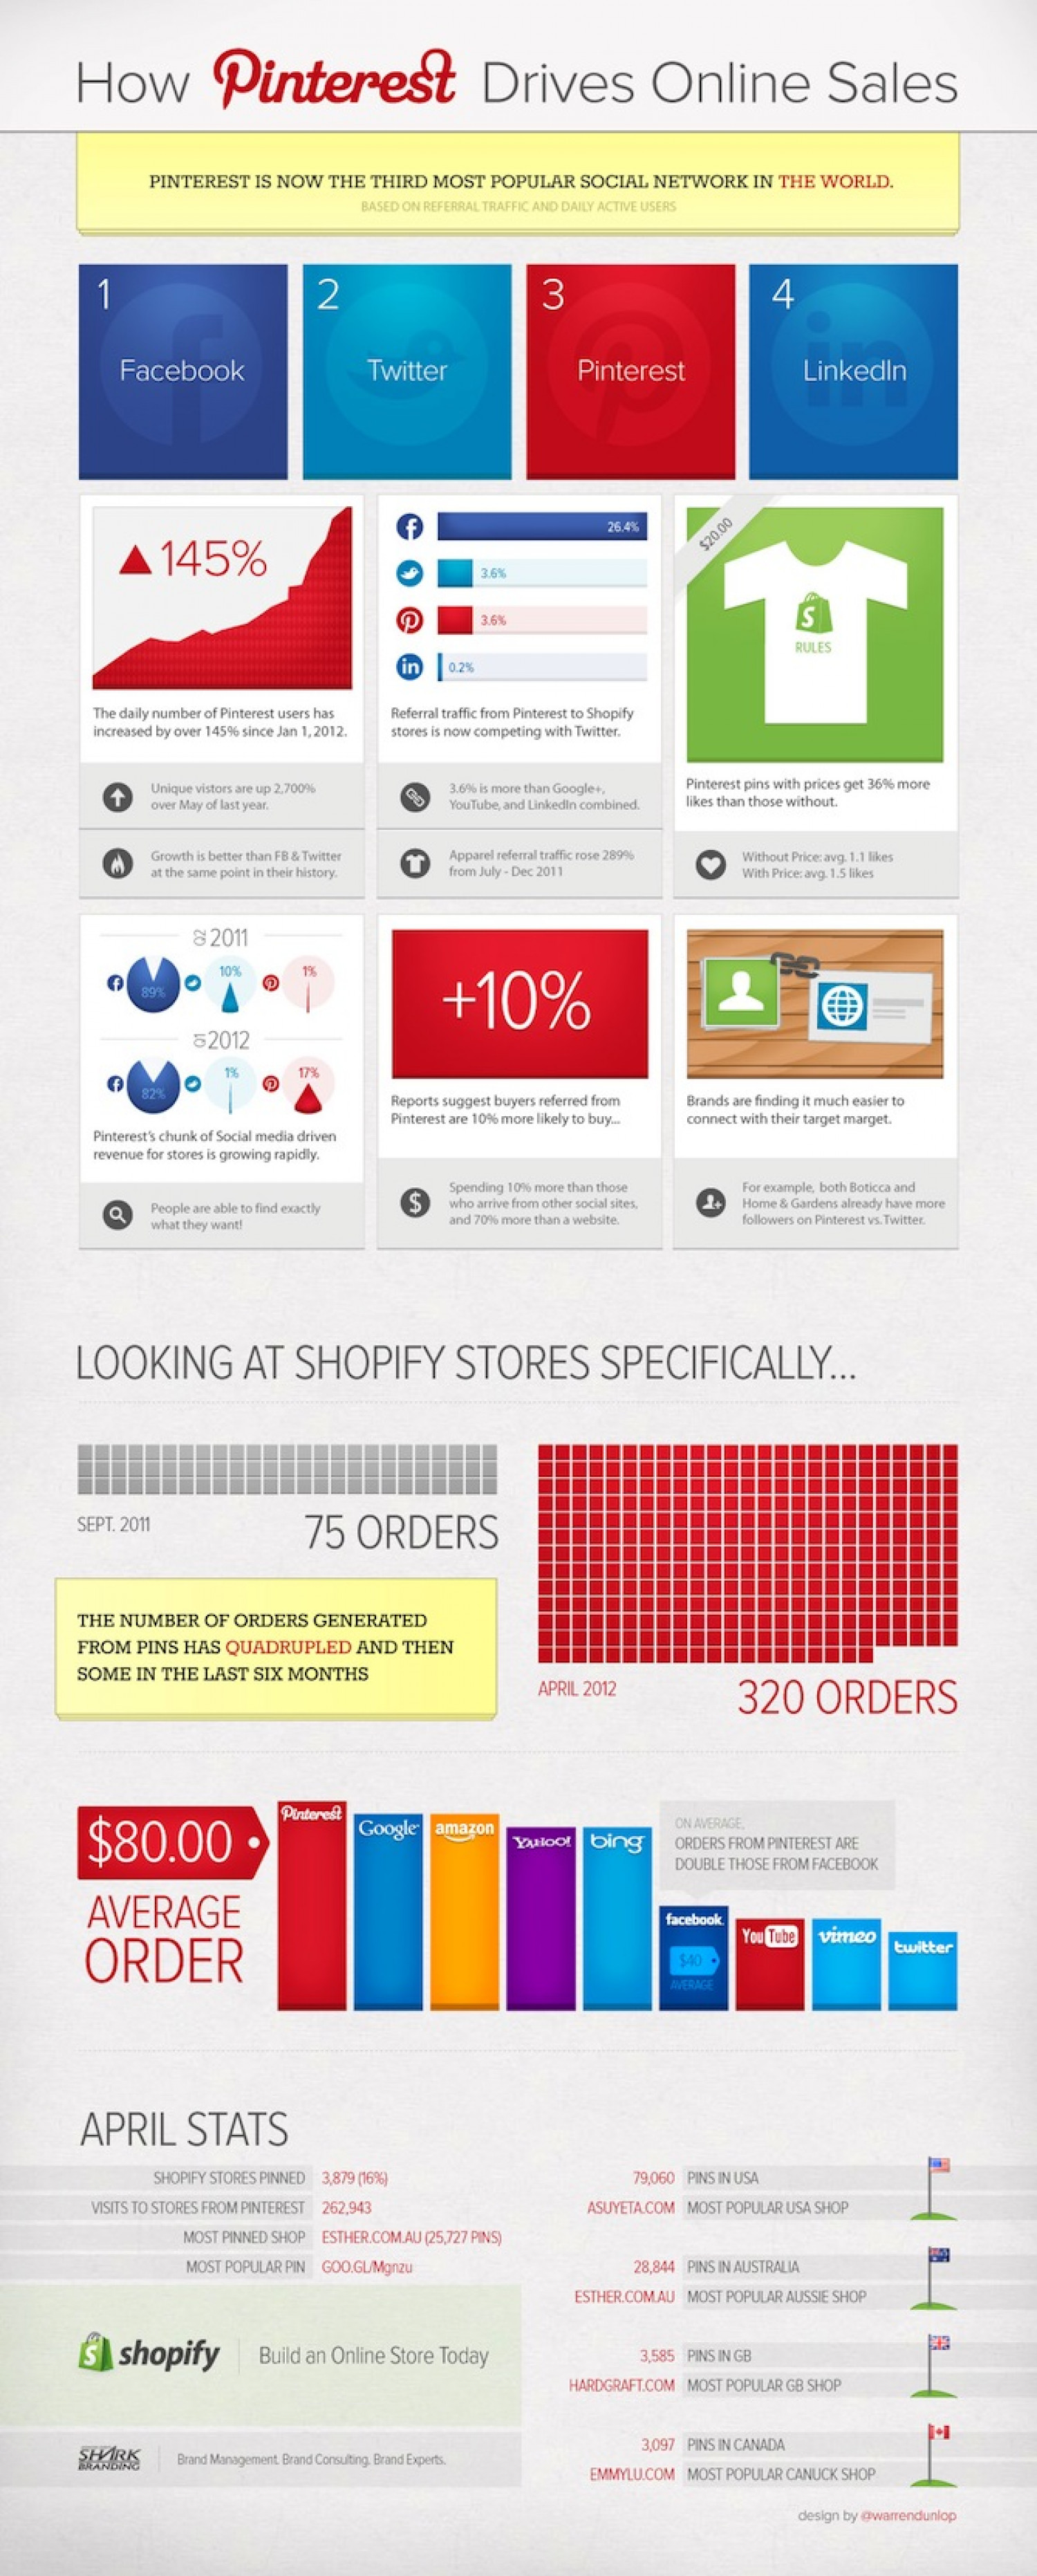 How Pinterest Drives Ecommerce Sales Infographic